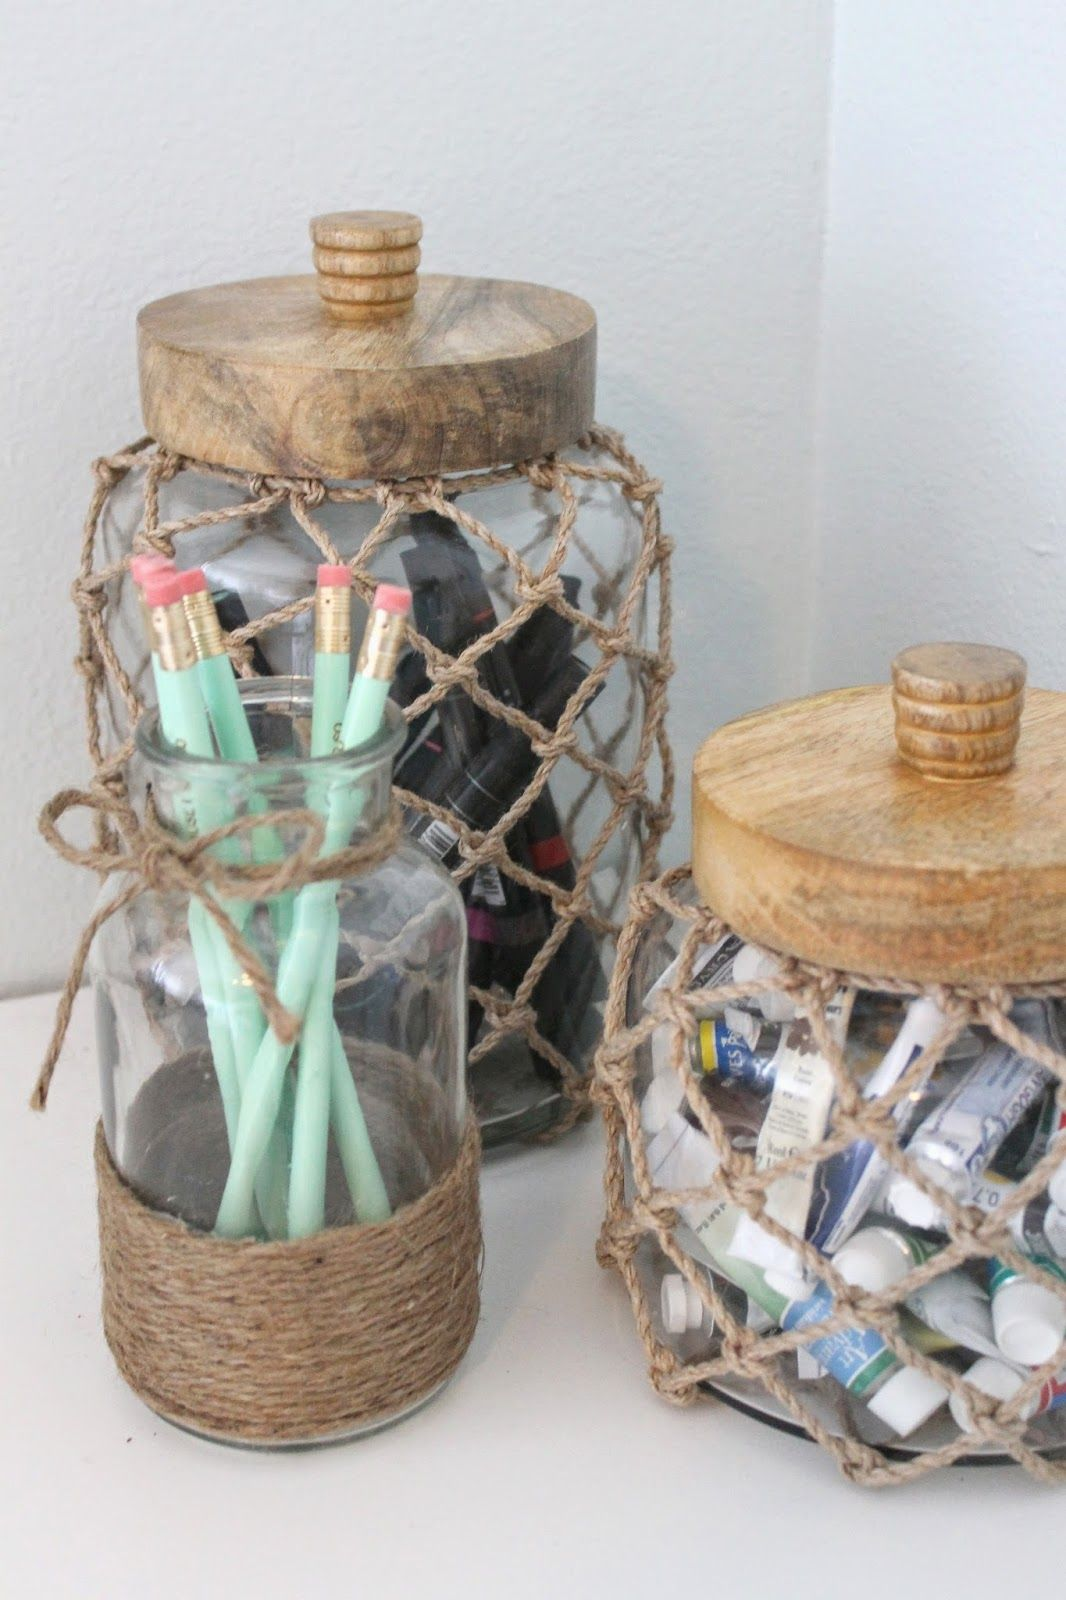 Badezimmer dekor strand thema great ikea spruce up already have several of these jars bought